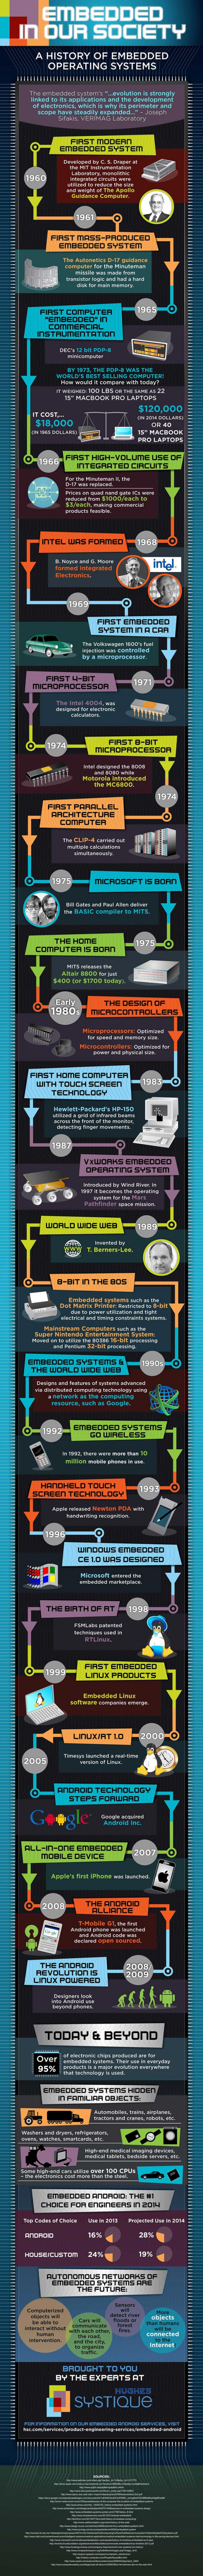 Embedded In Our Society: A History Of Embedded Operating Systems